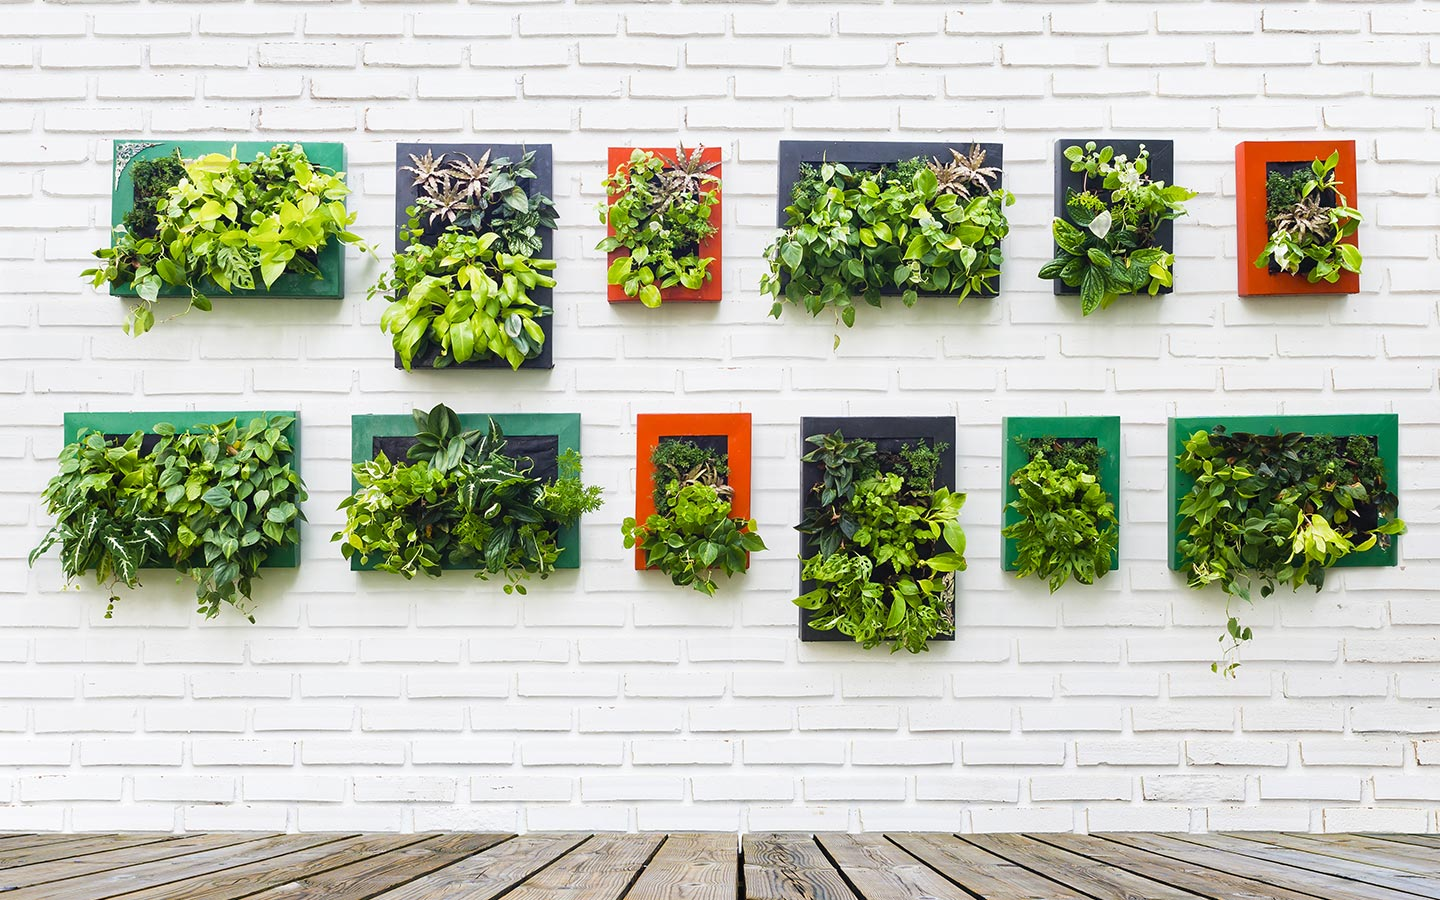 How to make a green wall at home